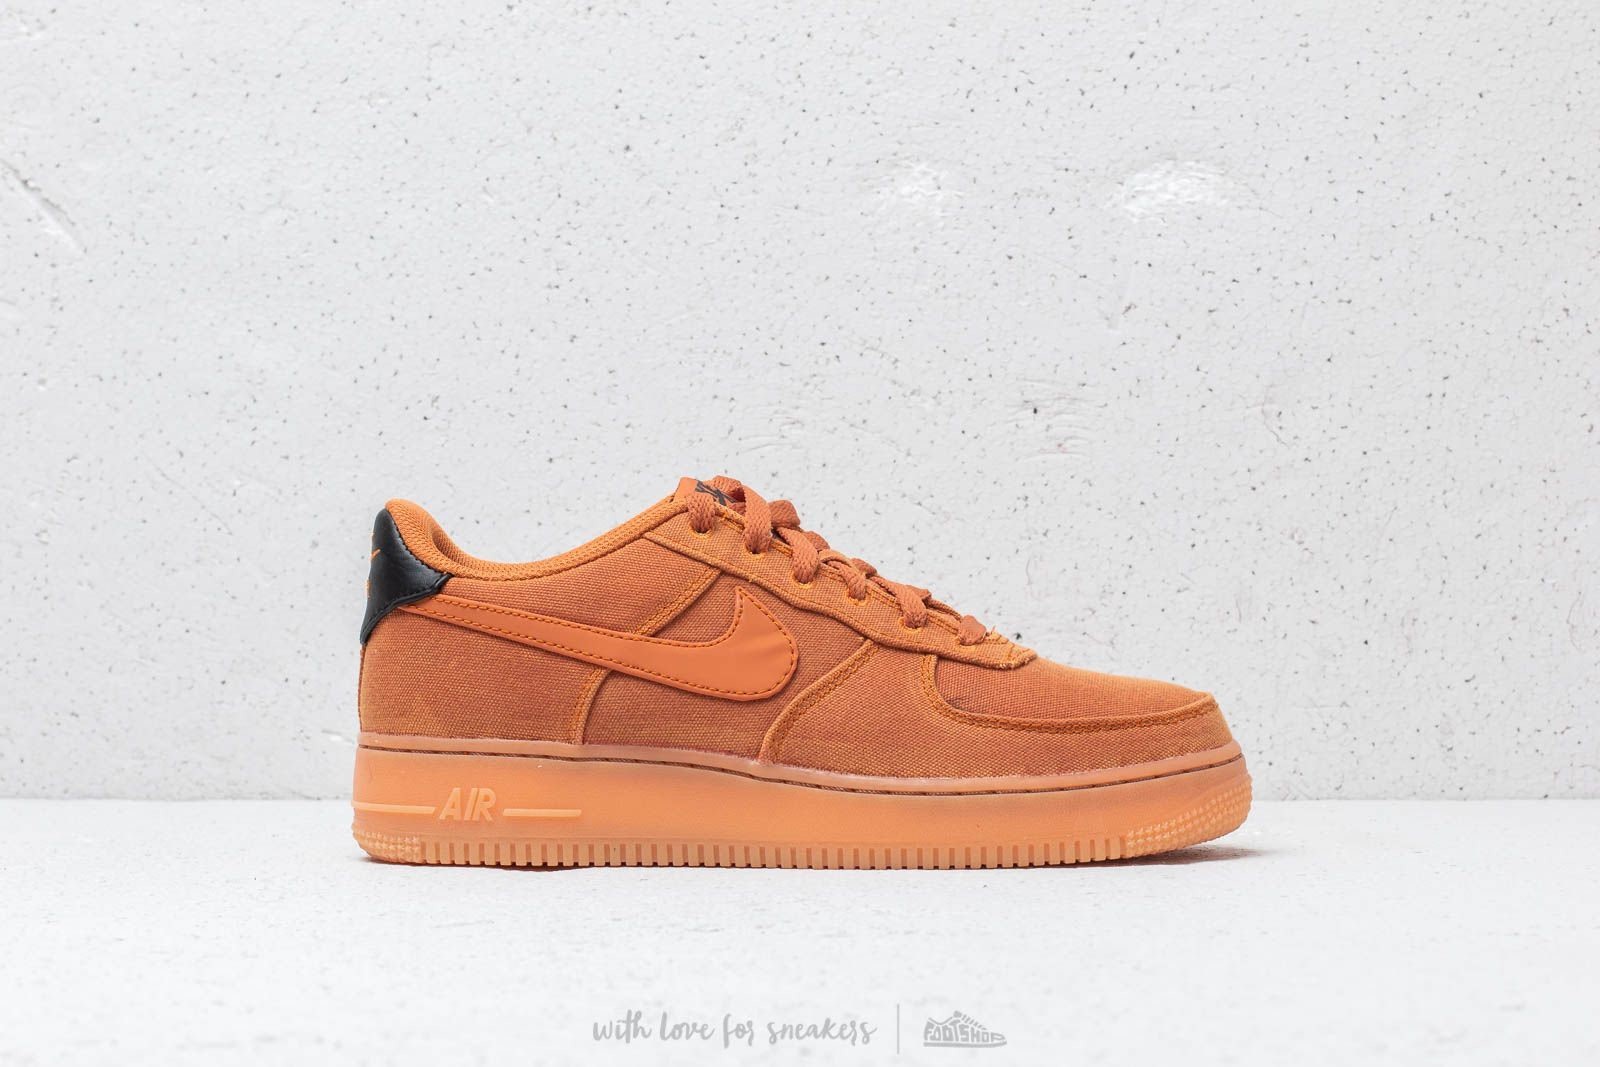 Nike Air Force 1 '07 LV8 Style Monarch Monarch Gum Med Brown | Footshop